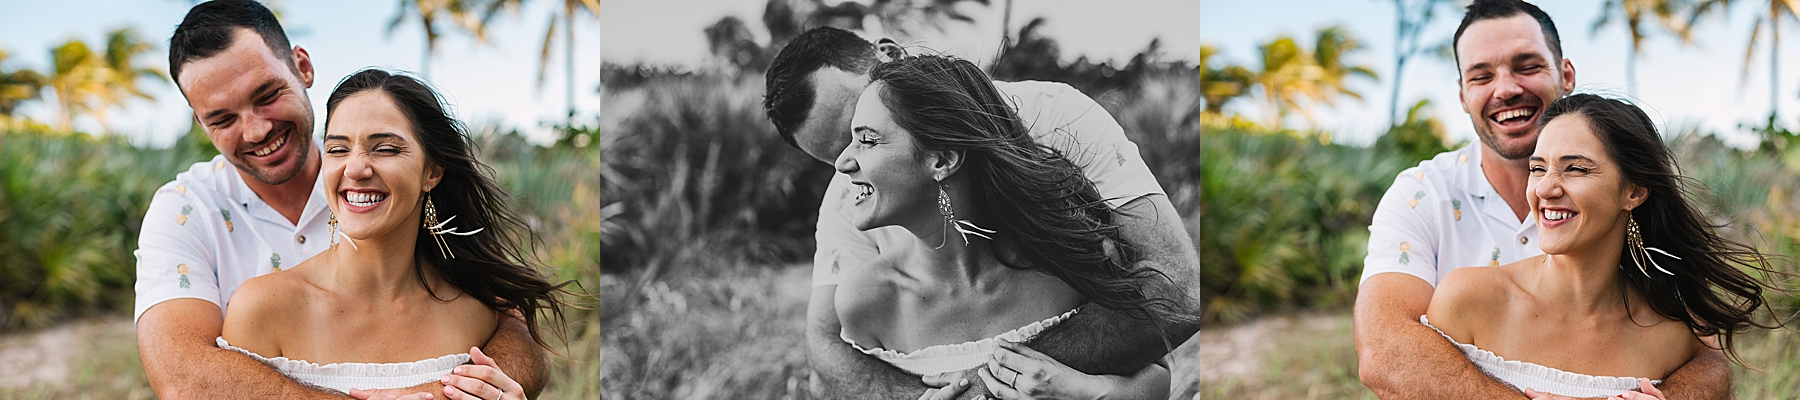 Miami Elopement Photographer